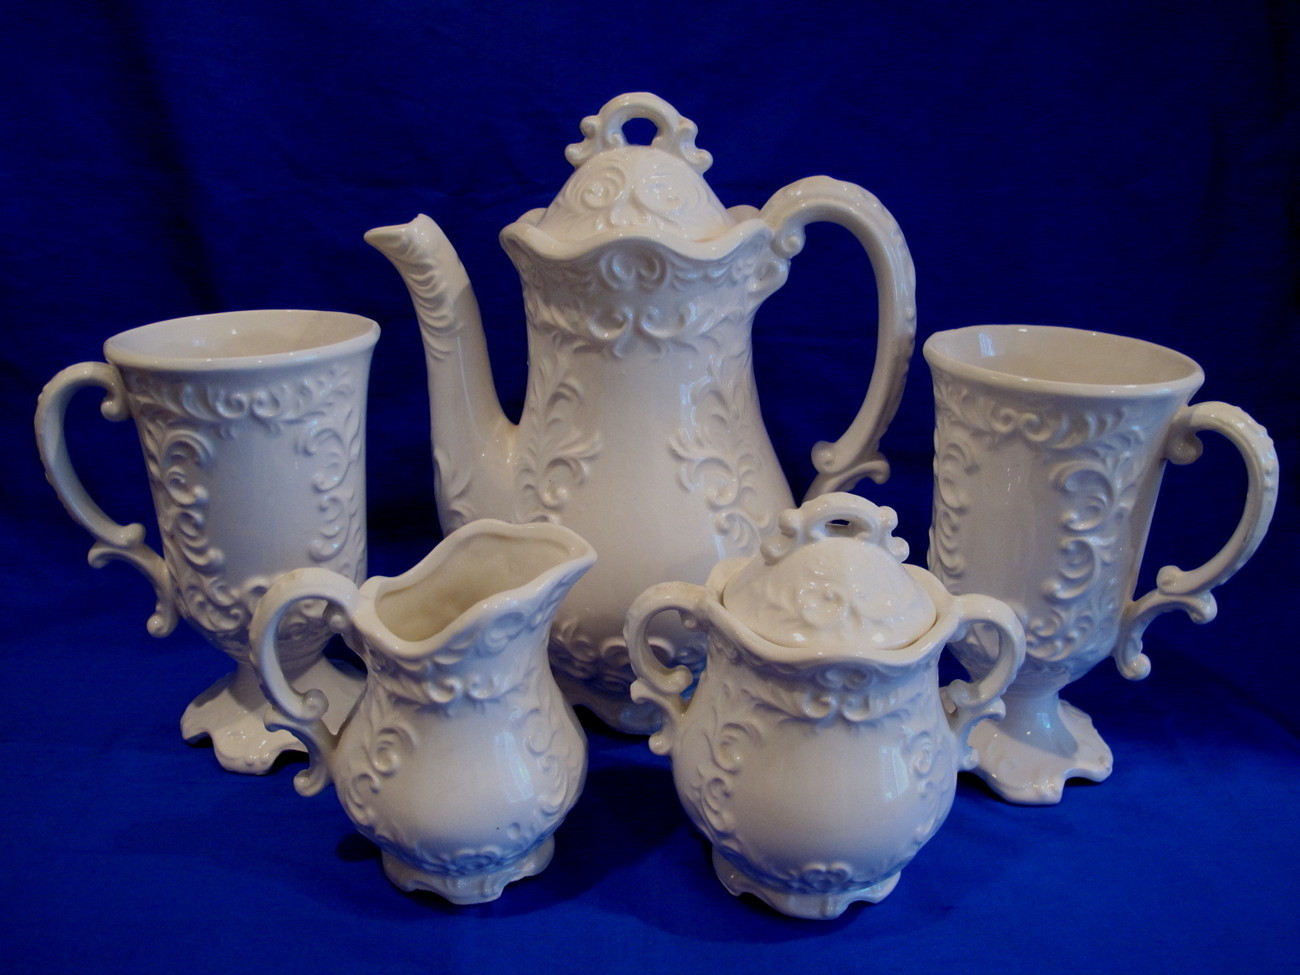 Primary image for Teapot Set Cream Sugar Cups Vintage Elegant Tea Service Collectible Mugs